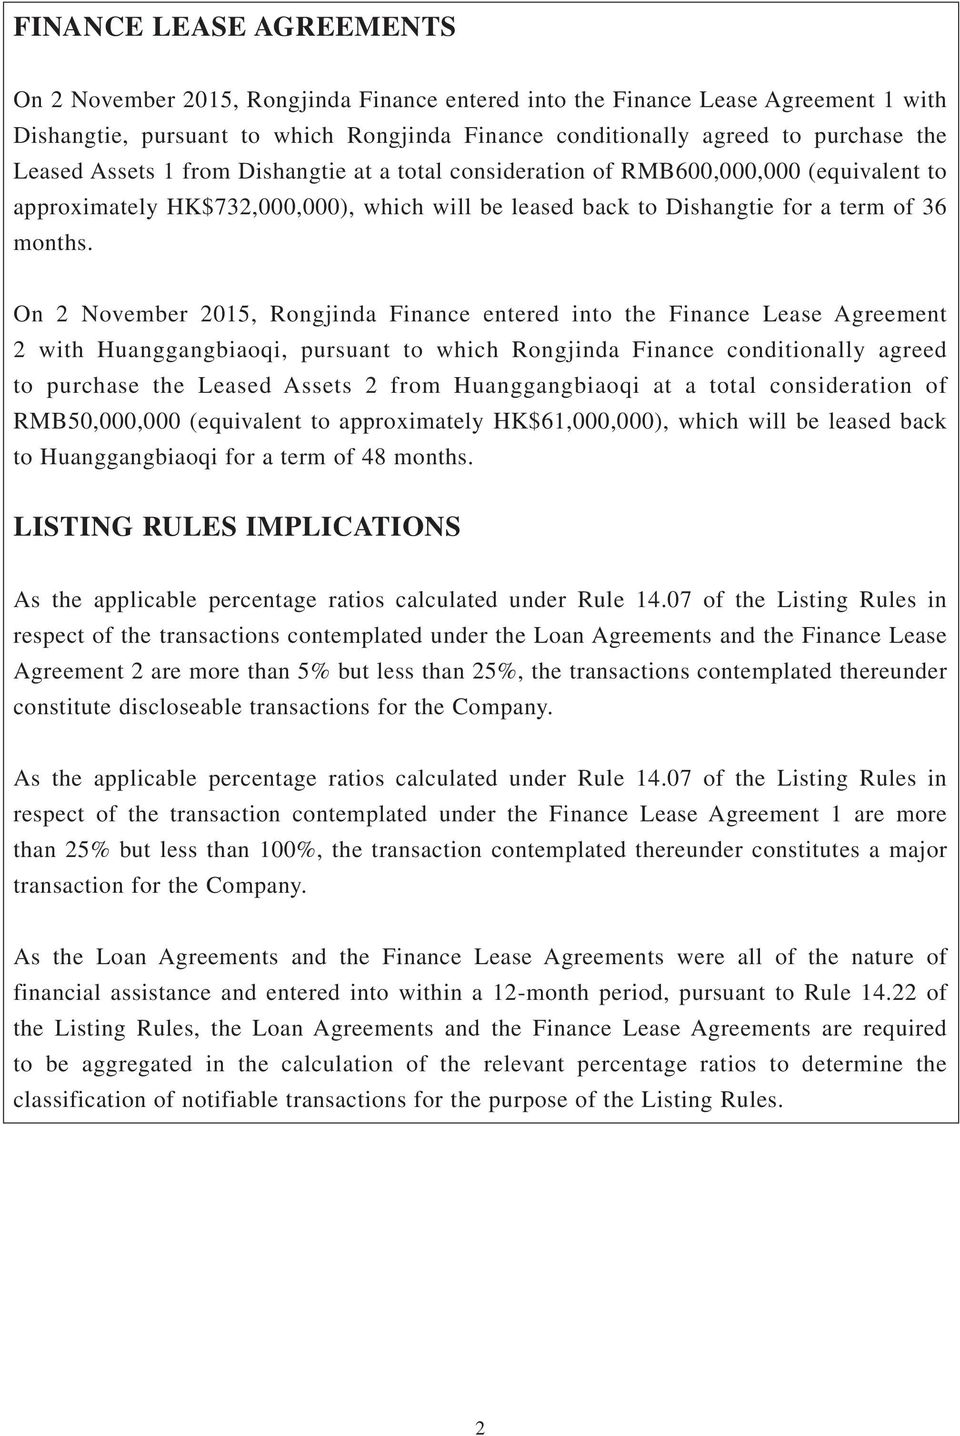 On 2 November 2015, Rongjinda Finance entered into the Finance Lease Agreement 2 with Huanggangbiaoqi, pursuant to which Rongjinda Finance conditionally agreed to purchase the Leased Assets 2 from